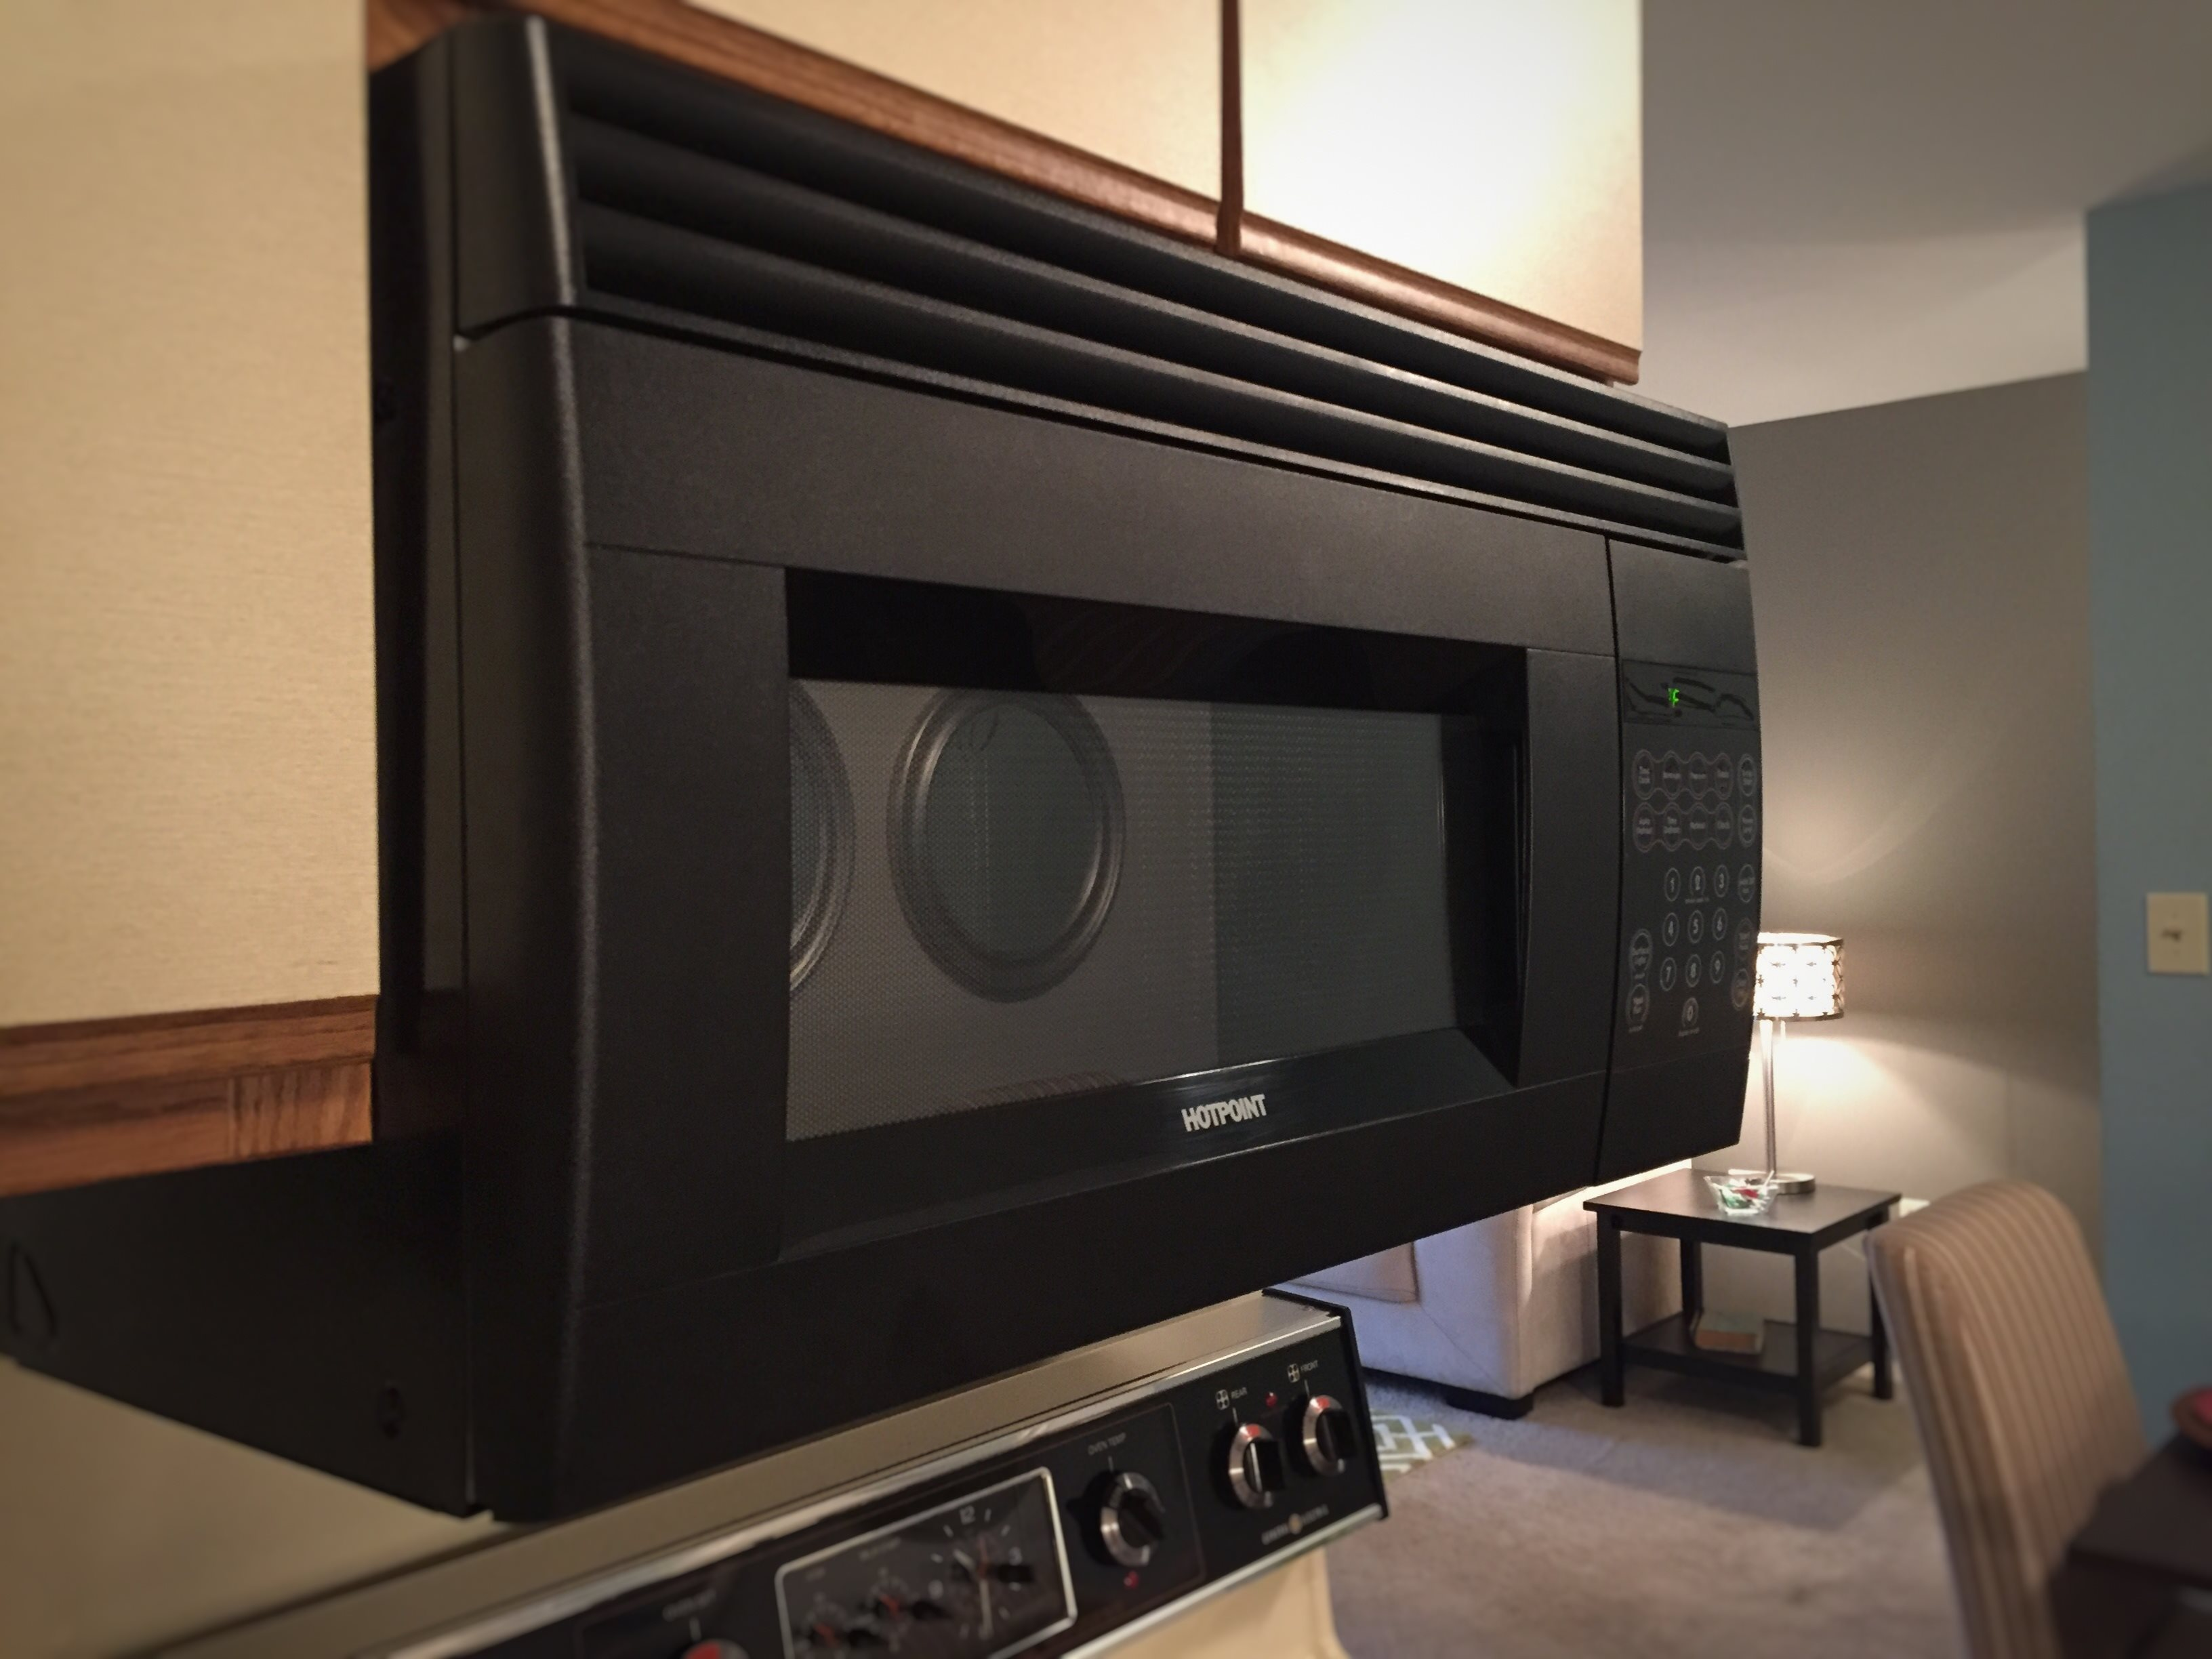 Built-in Microwave at Knottingham Apartments, Michigan